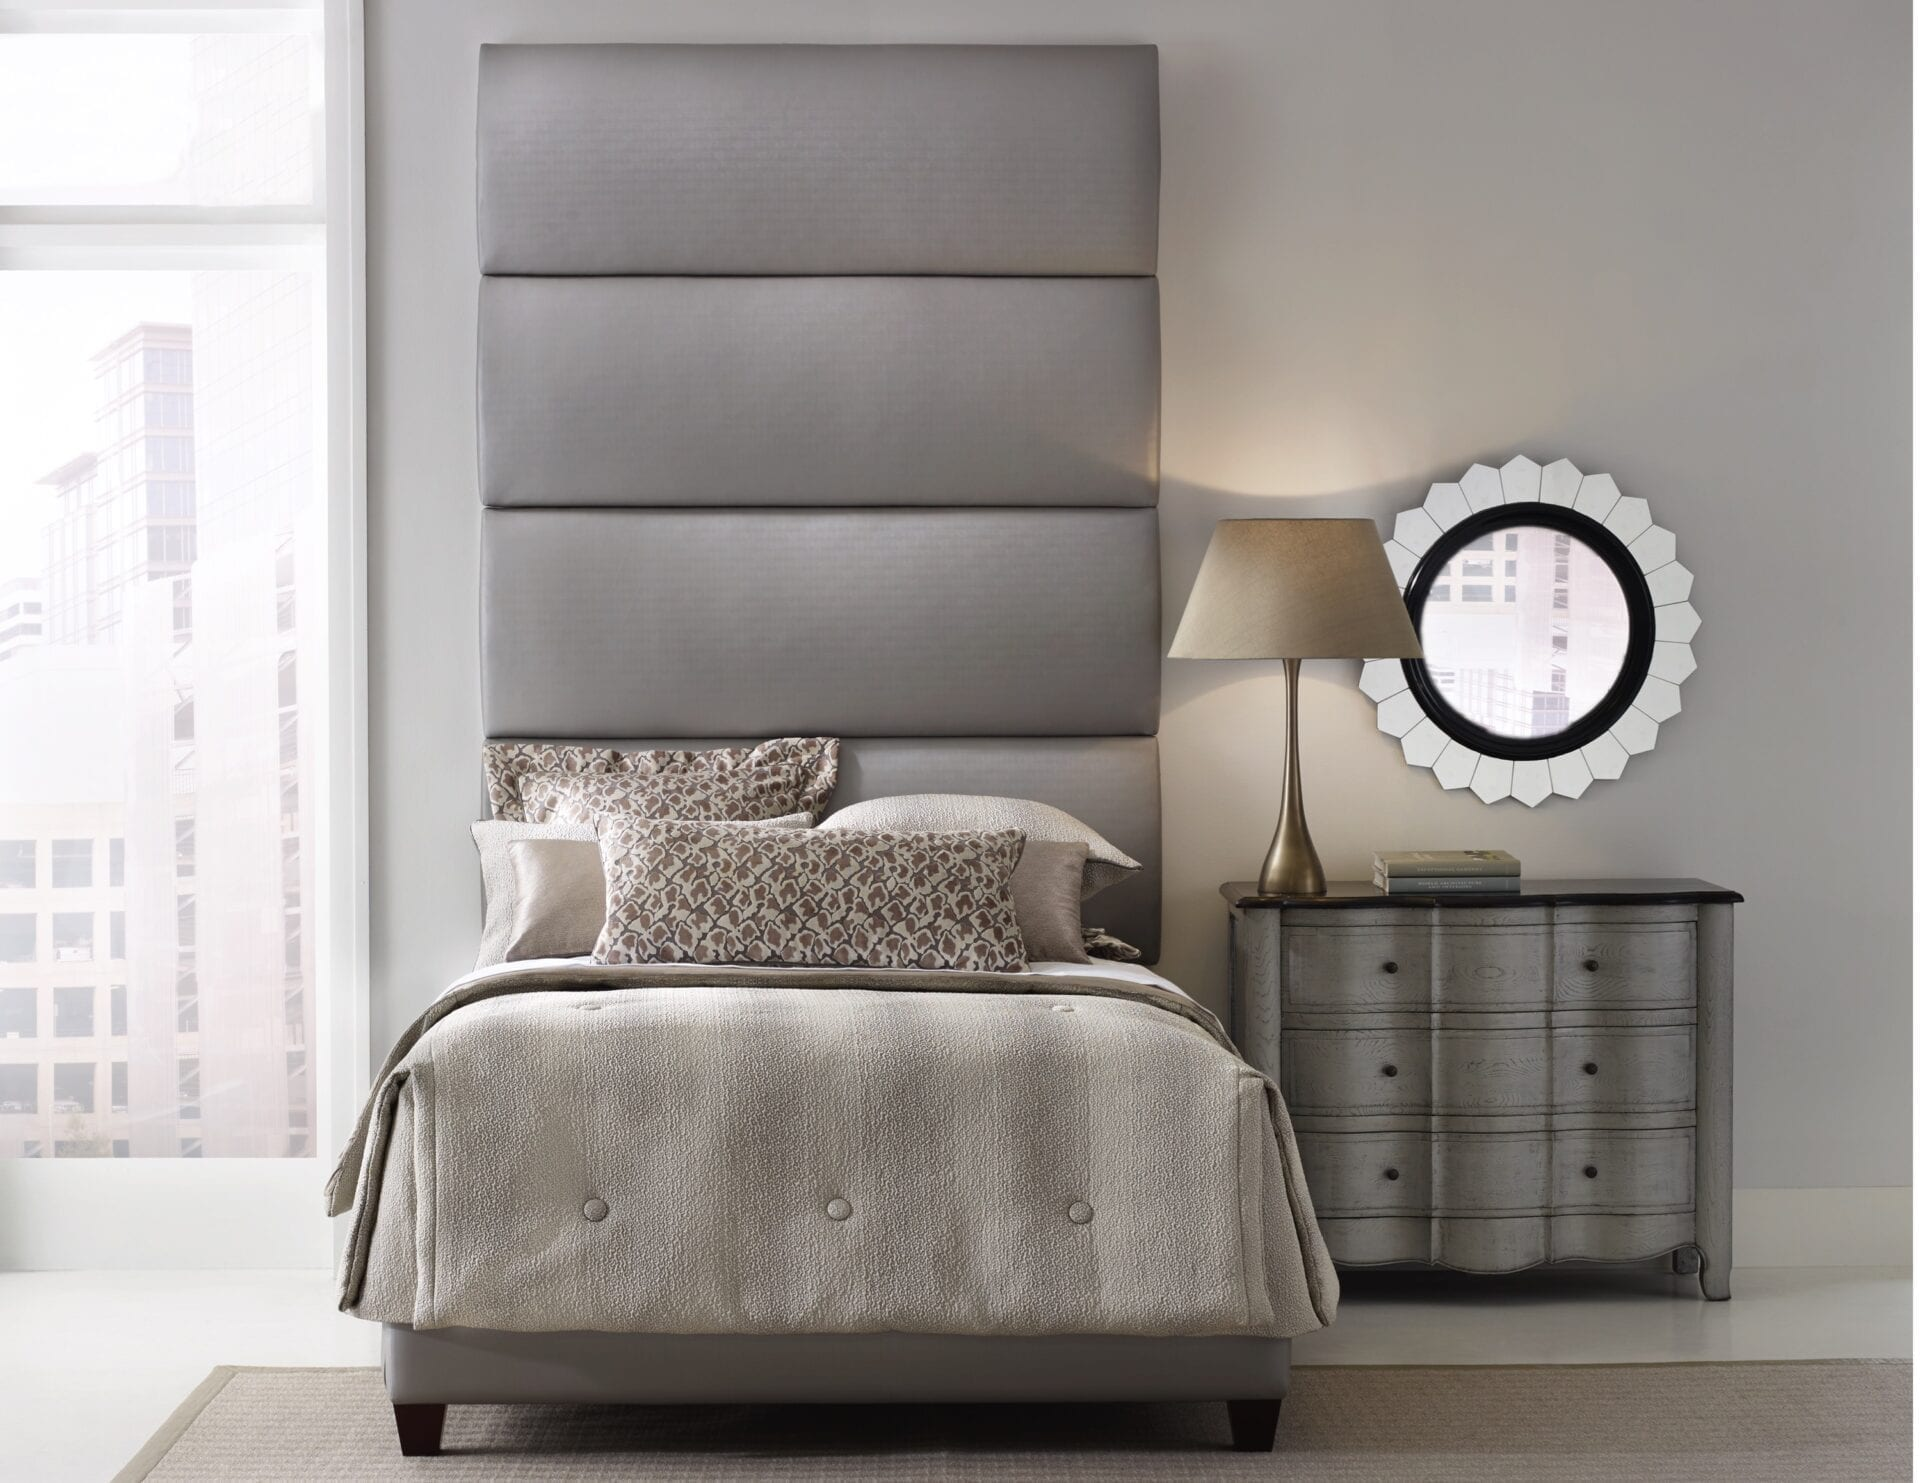 Arpel - Wall mounted upholstered, luxury headboard with custom upholstered wall panels - Custom luxury, upholstered beds with high end, bedroom textiles | Blend Home Furnishings